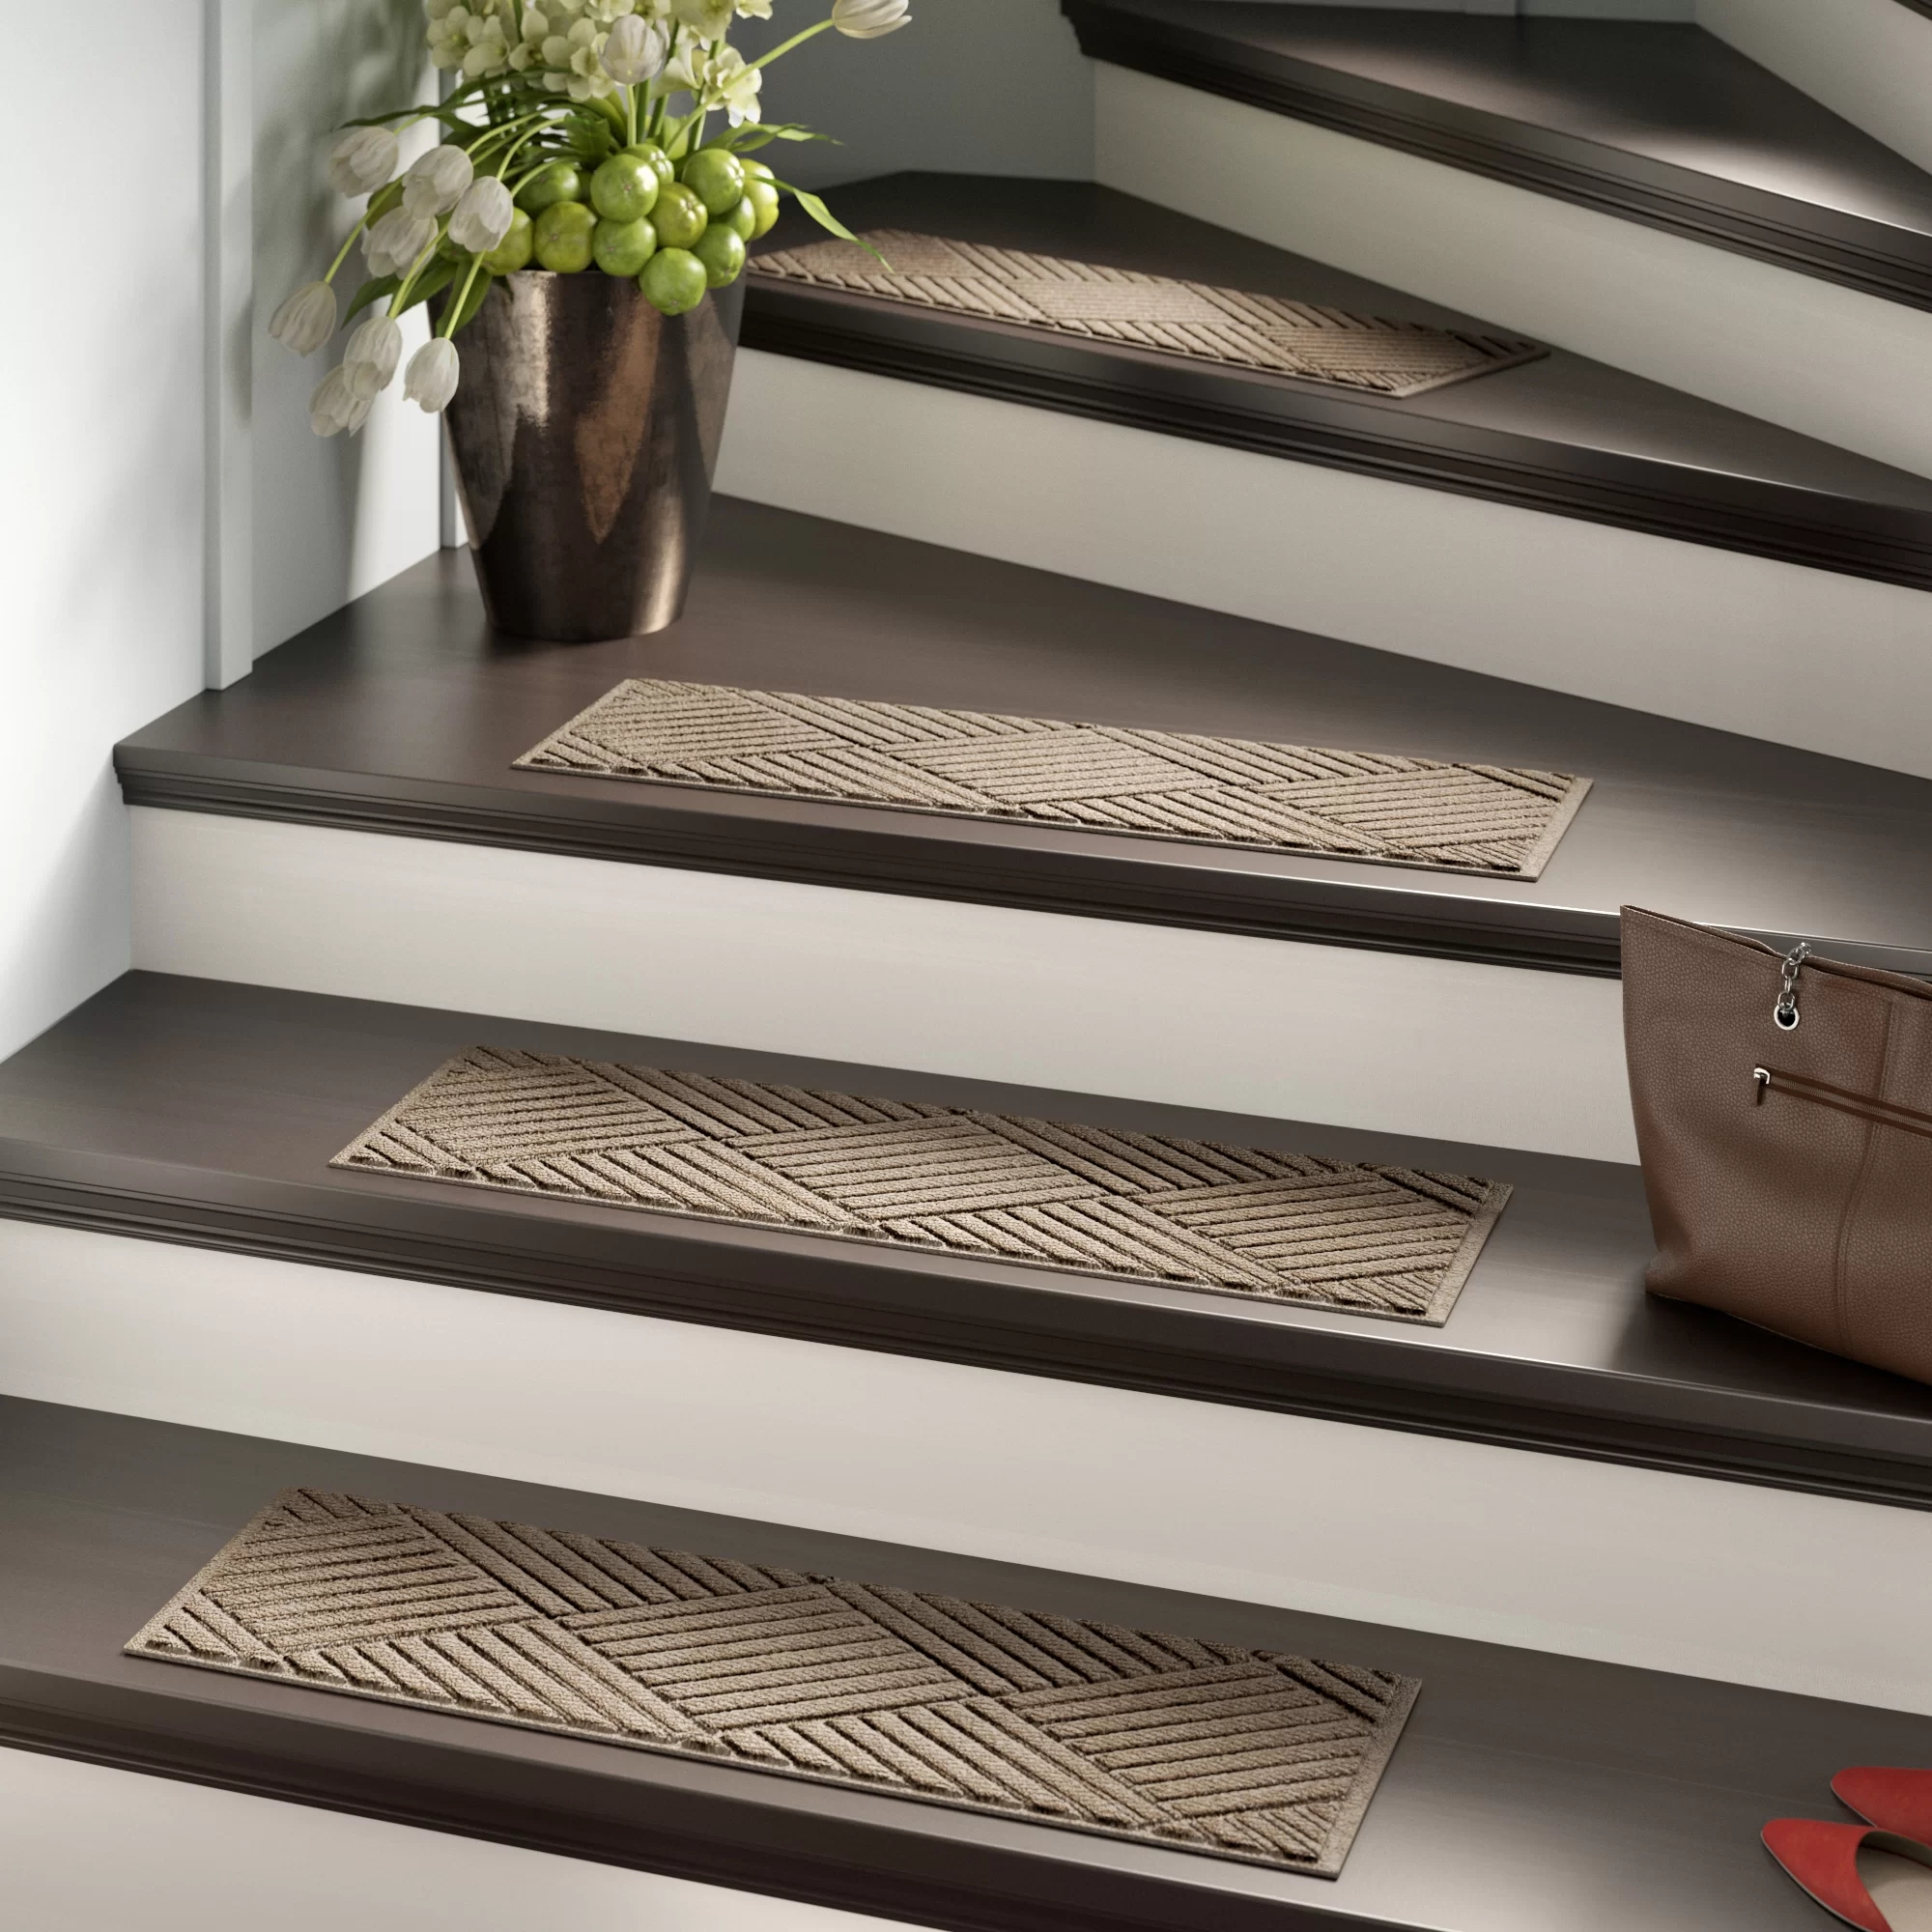 Tucker Murphy™ Pet Beauvais Stair Tread Reviews Wayfair   Rubber Backed Carpet Stair Treads   Ottomanson Softy   Wood   Softy Stair   Slip Resistant Rubber   Beige